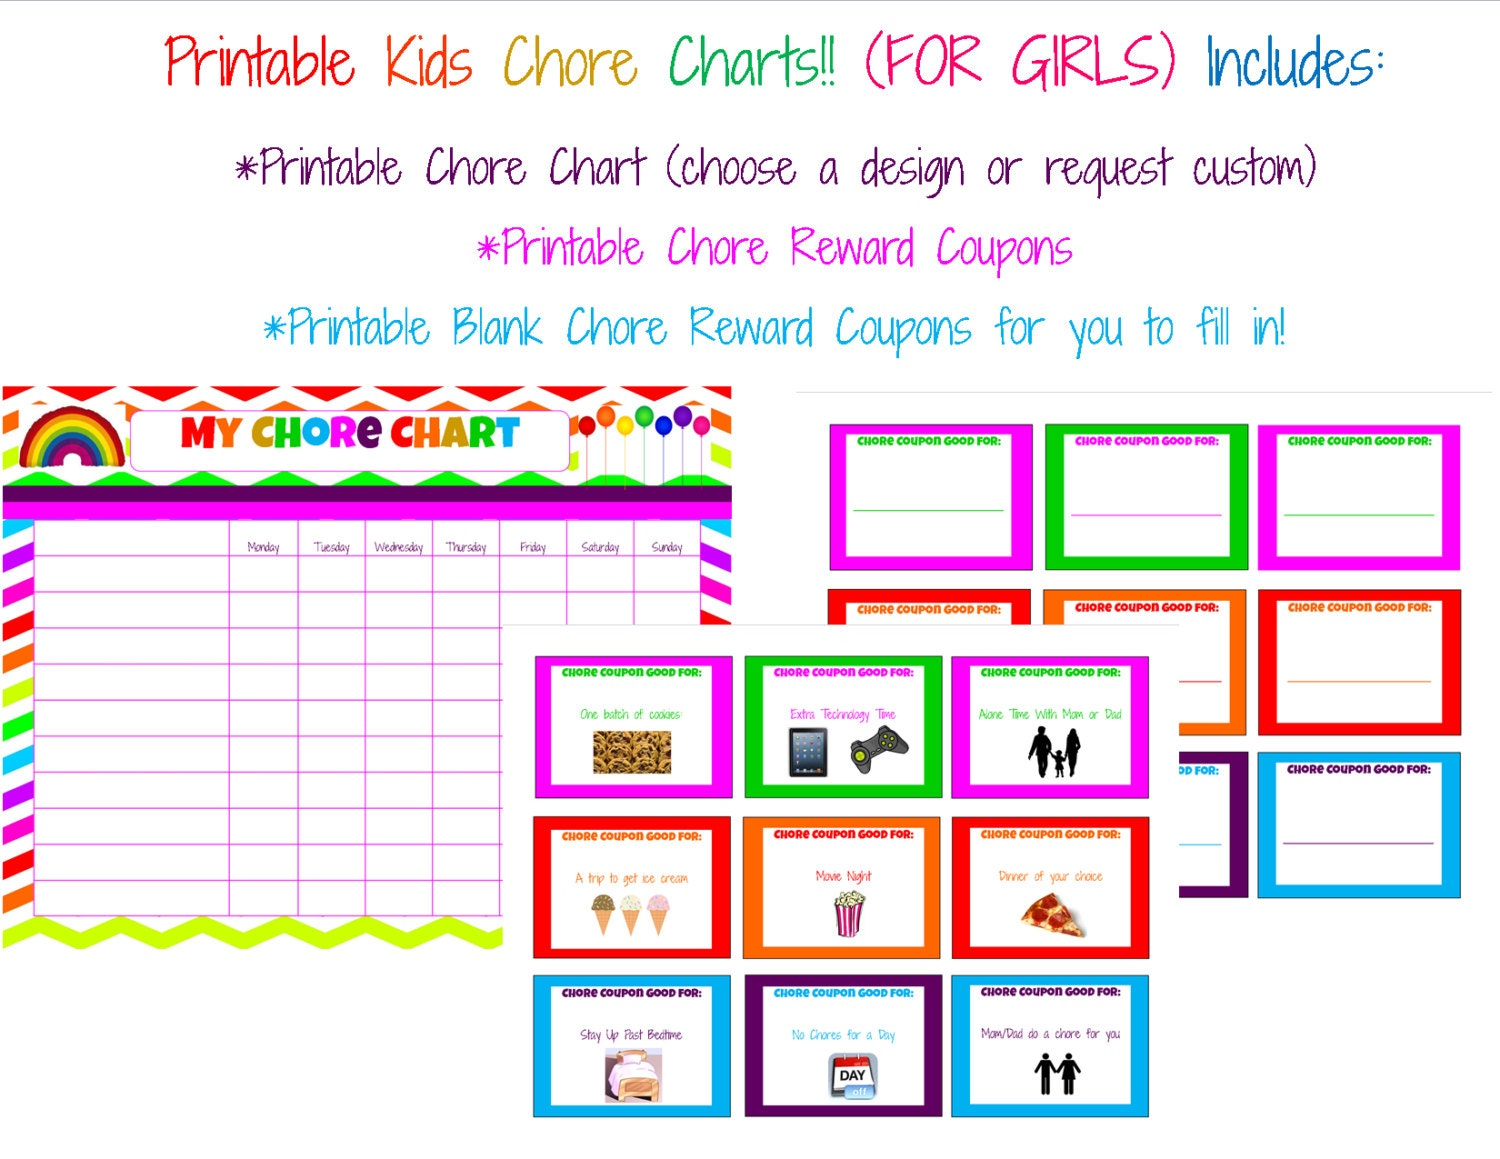 This is an image of Comprehensive Reward Chart Printable